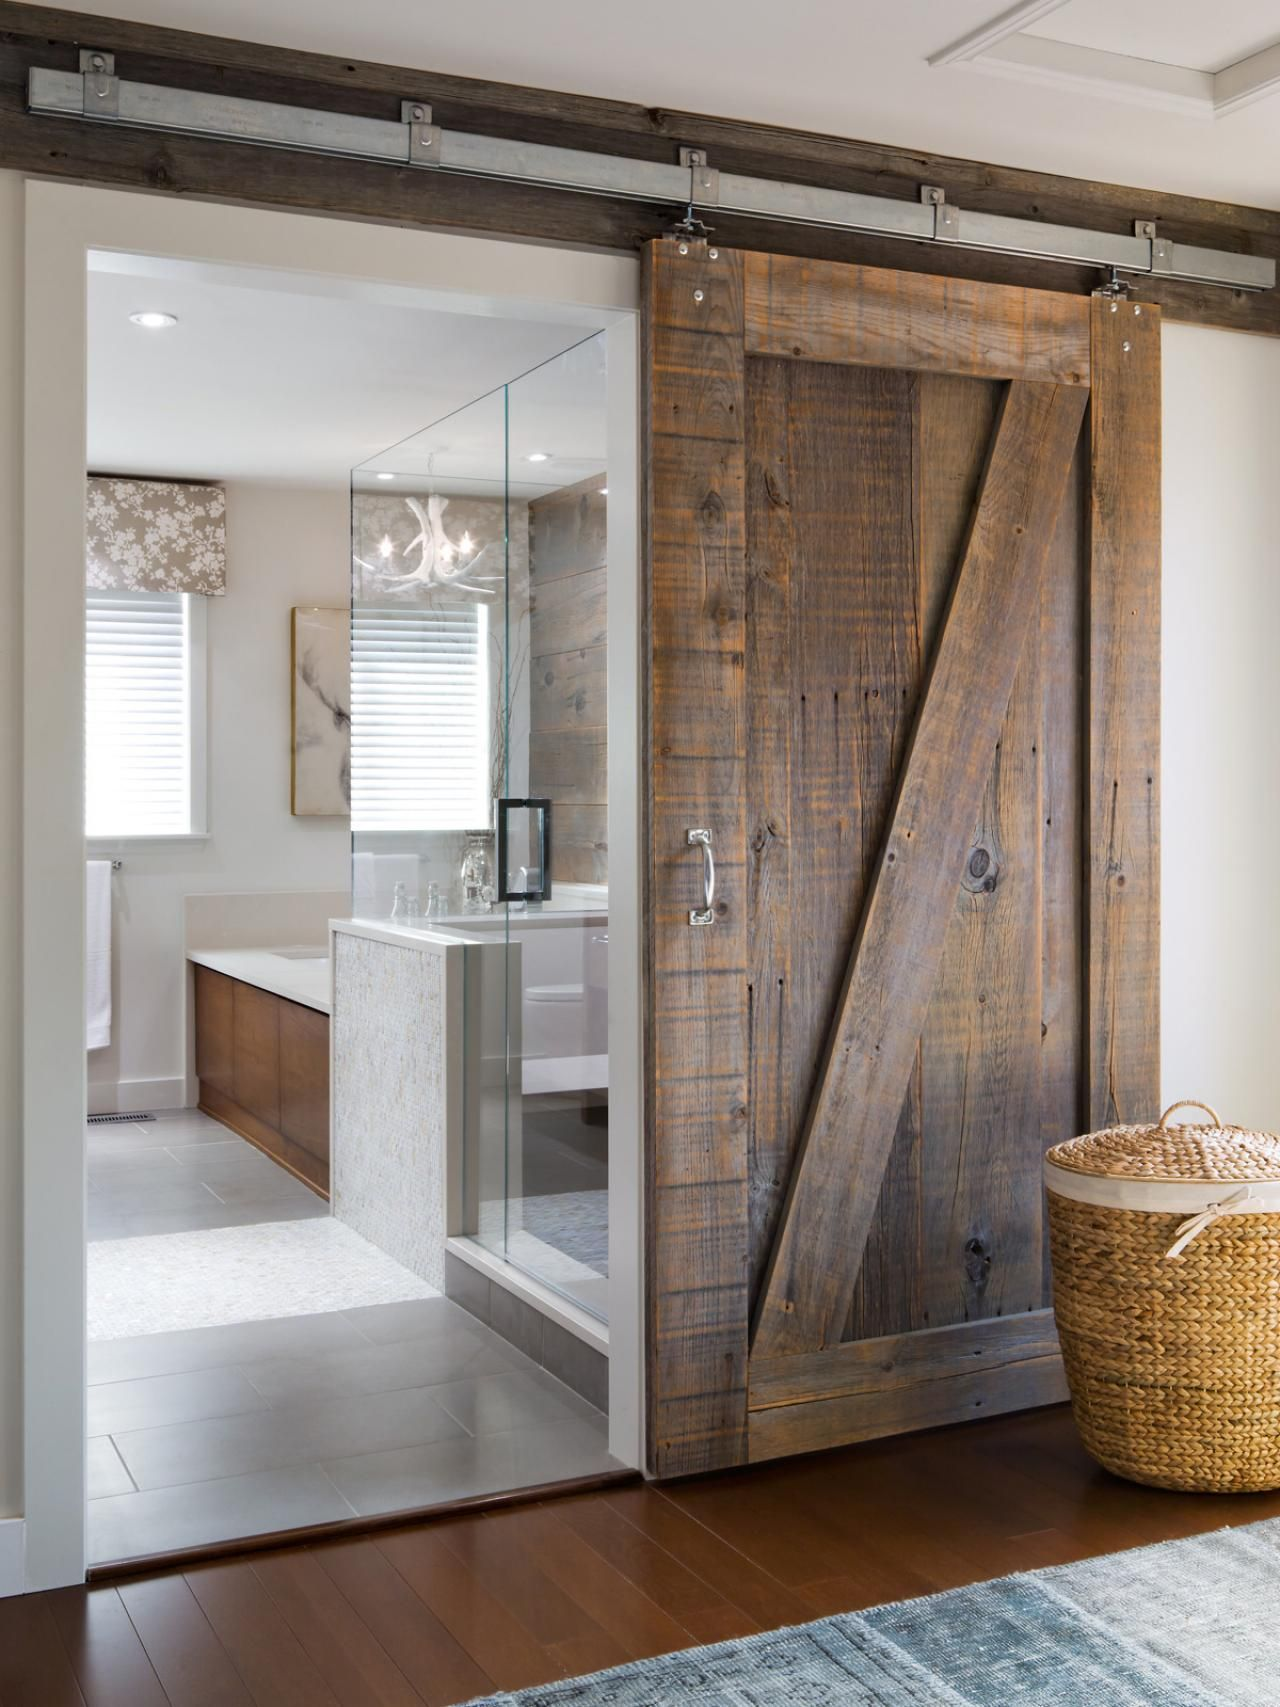 Sliding barn door in house - Barn Door Design Ideas Home Remodeling Ideas For Basements Home Theaters More